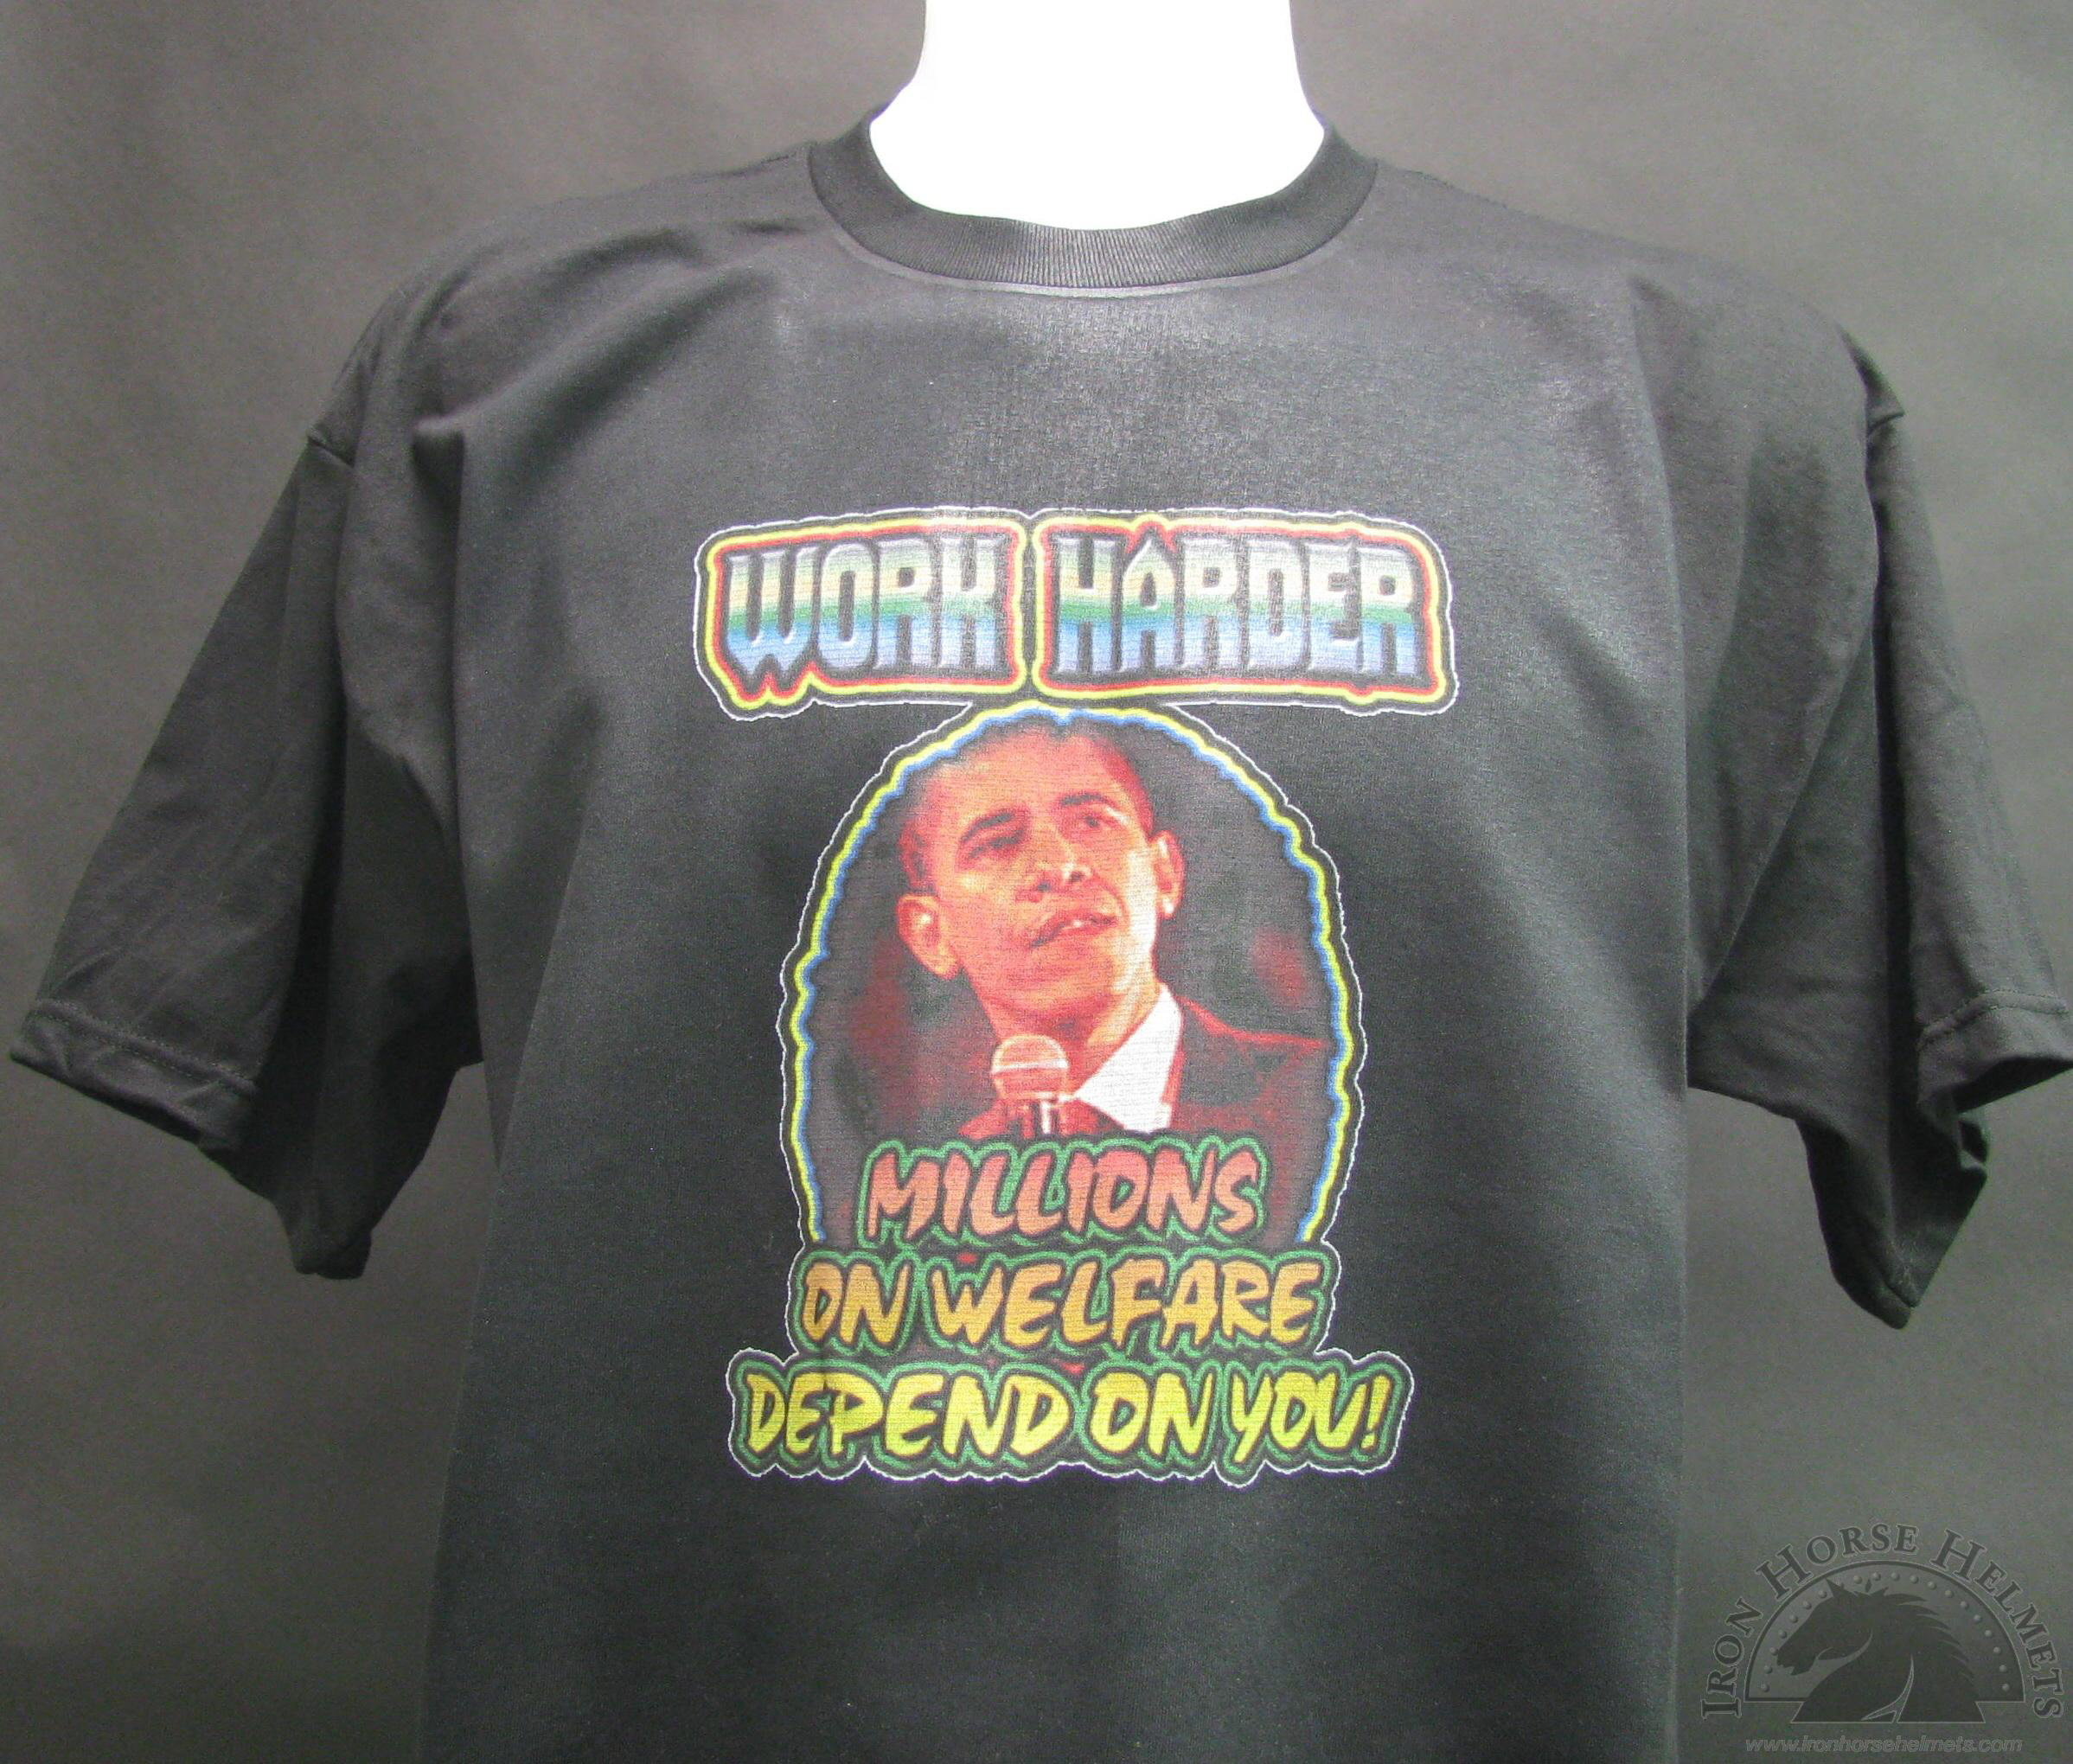 work-harder-millions-on-welfare-depend-on-you-shirt.jpg